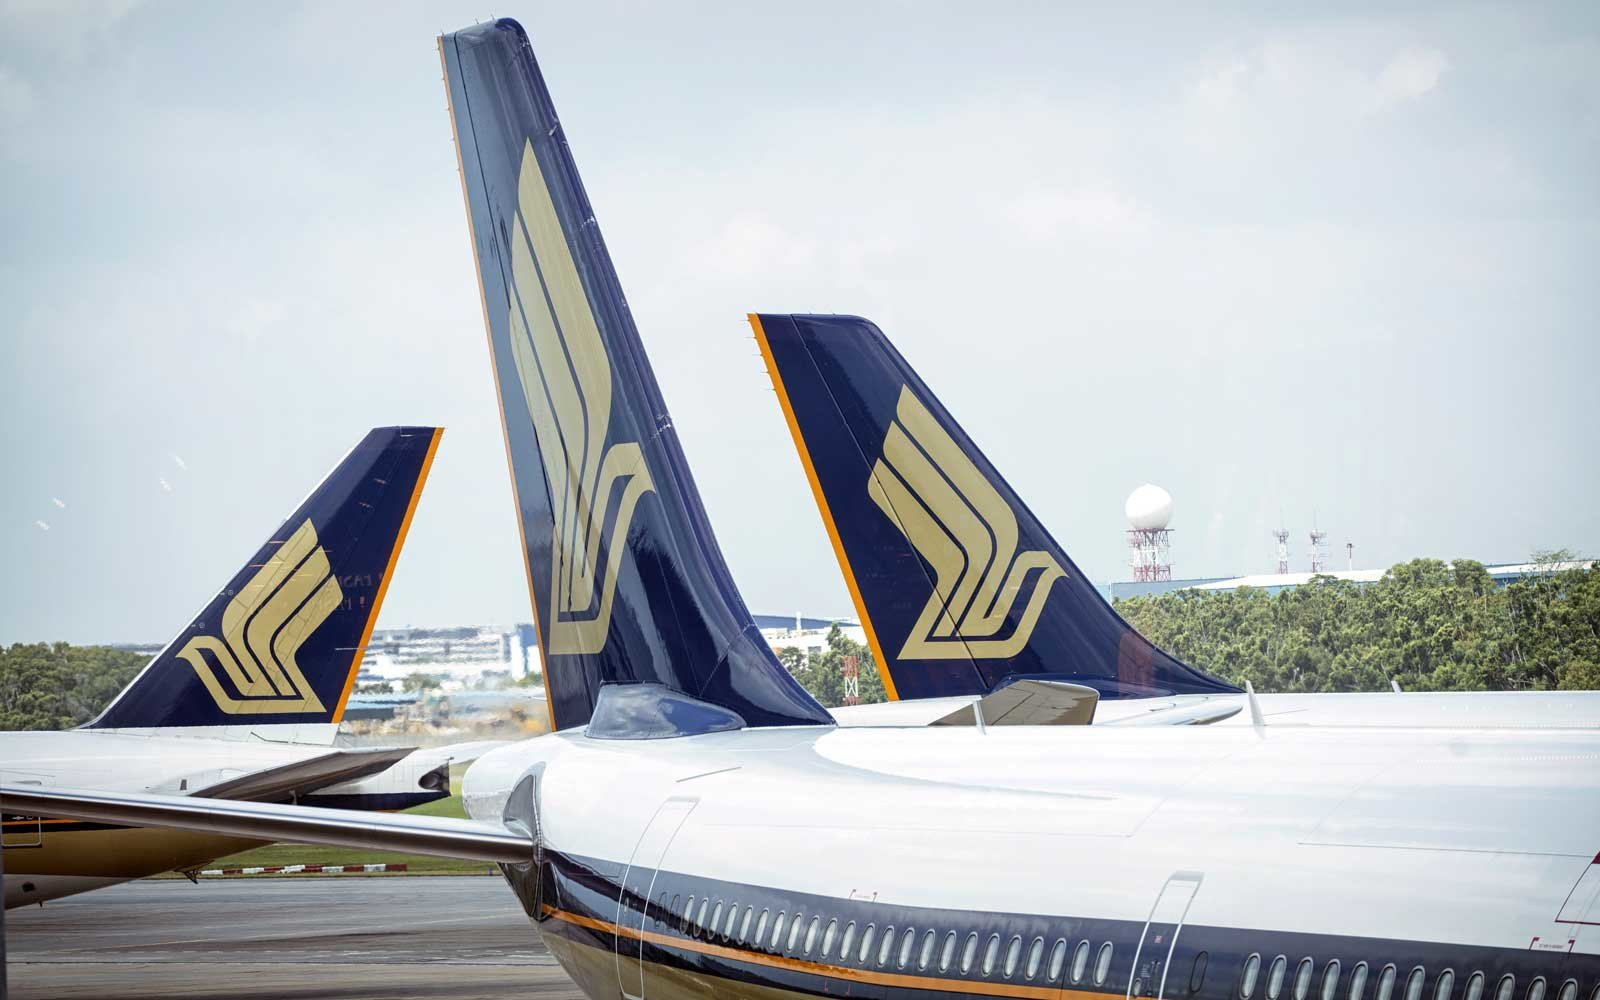 Singapore Airlines KrisFlyer Loyalty Program